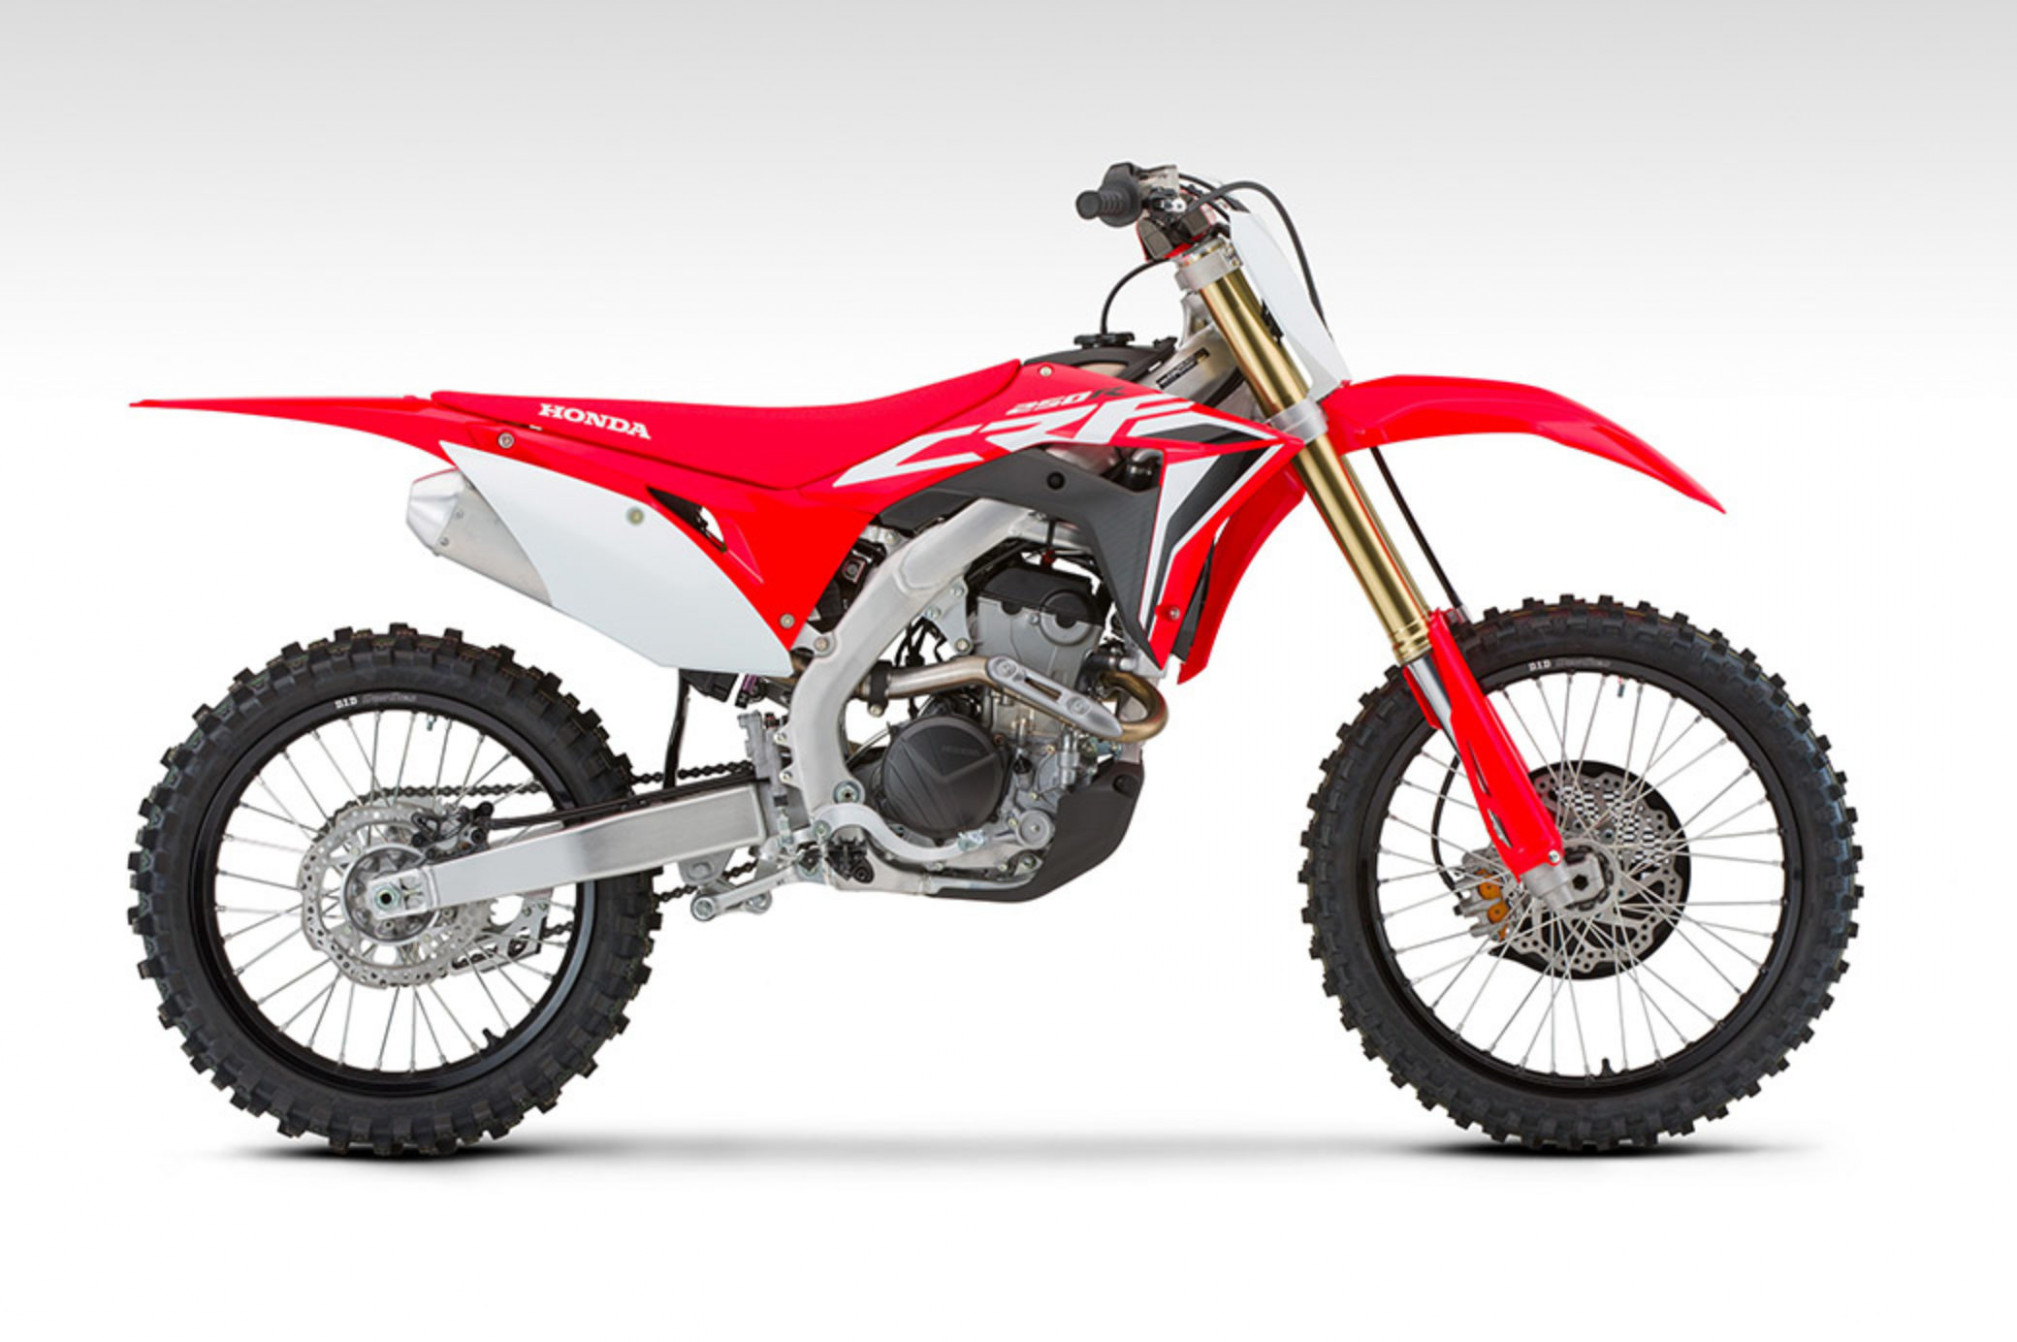 8 Honda dirt bikes revealed - 2020 honda dirt bike models